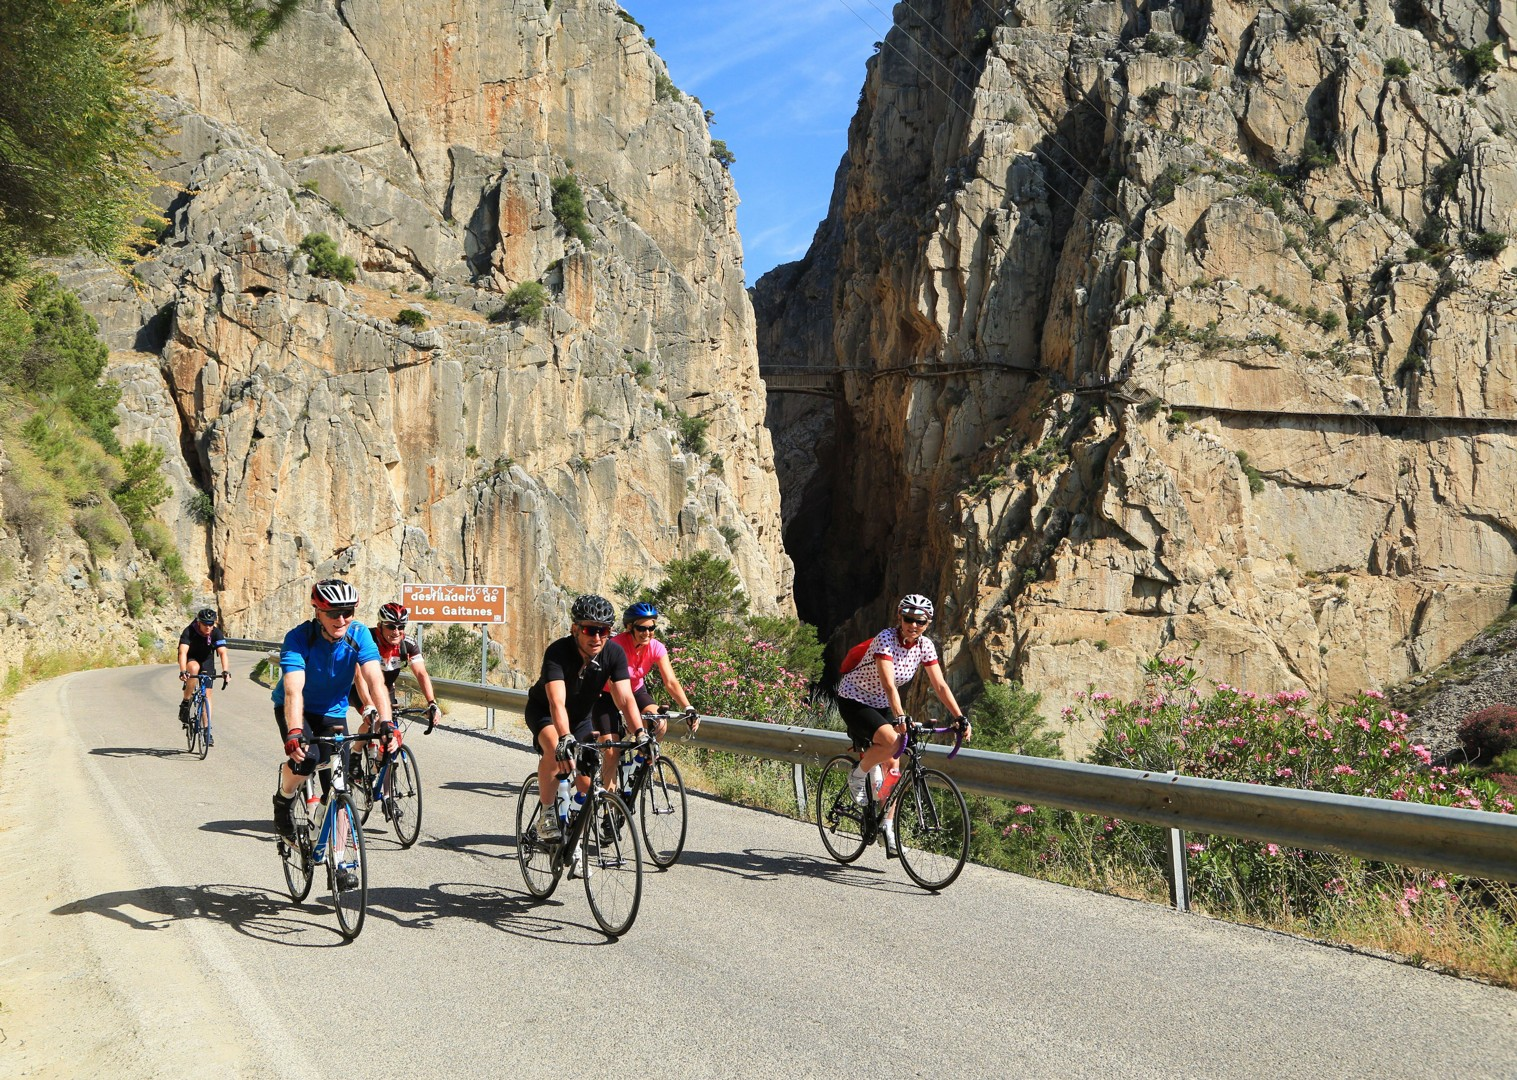 road-cycling-adventure-through-basque-country.jpg - Spain - Del Norte al Sur - Basque Country to Andalucia - Guided Road Cycling Holiday - Road Cycling